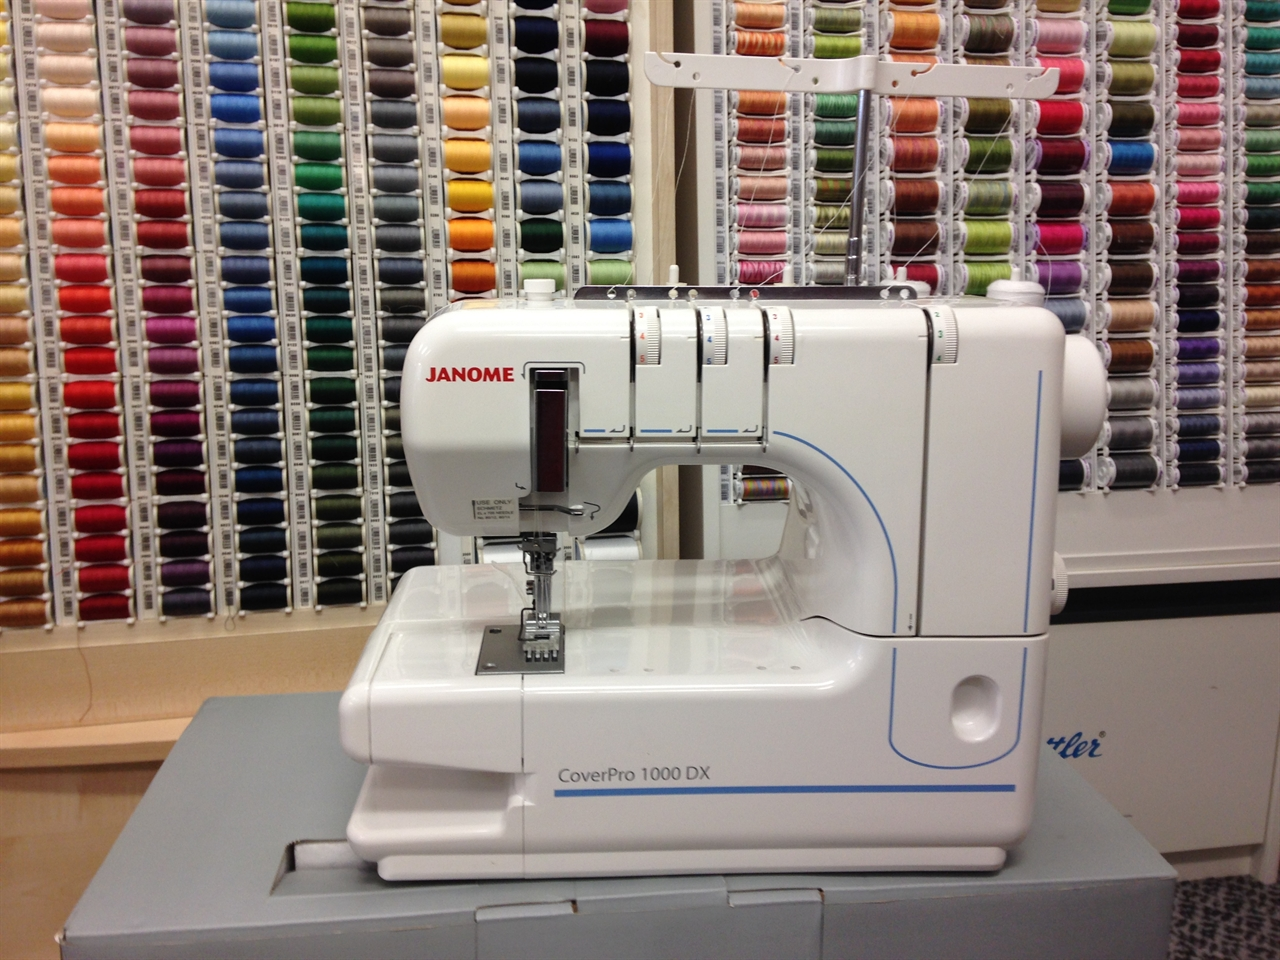 Brother Sewing Machines: An Approach To Design Digitally